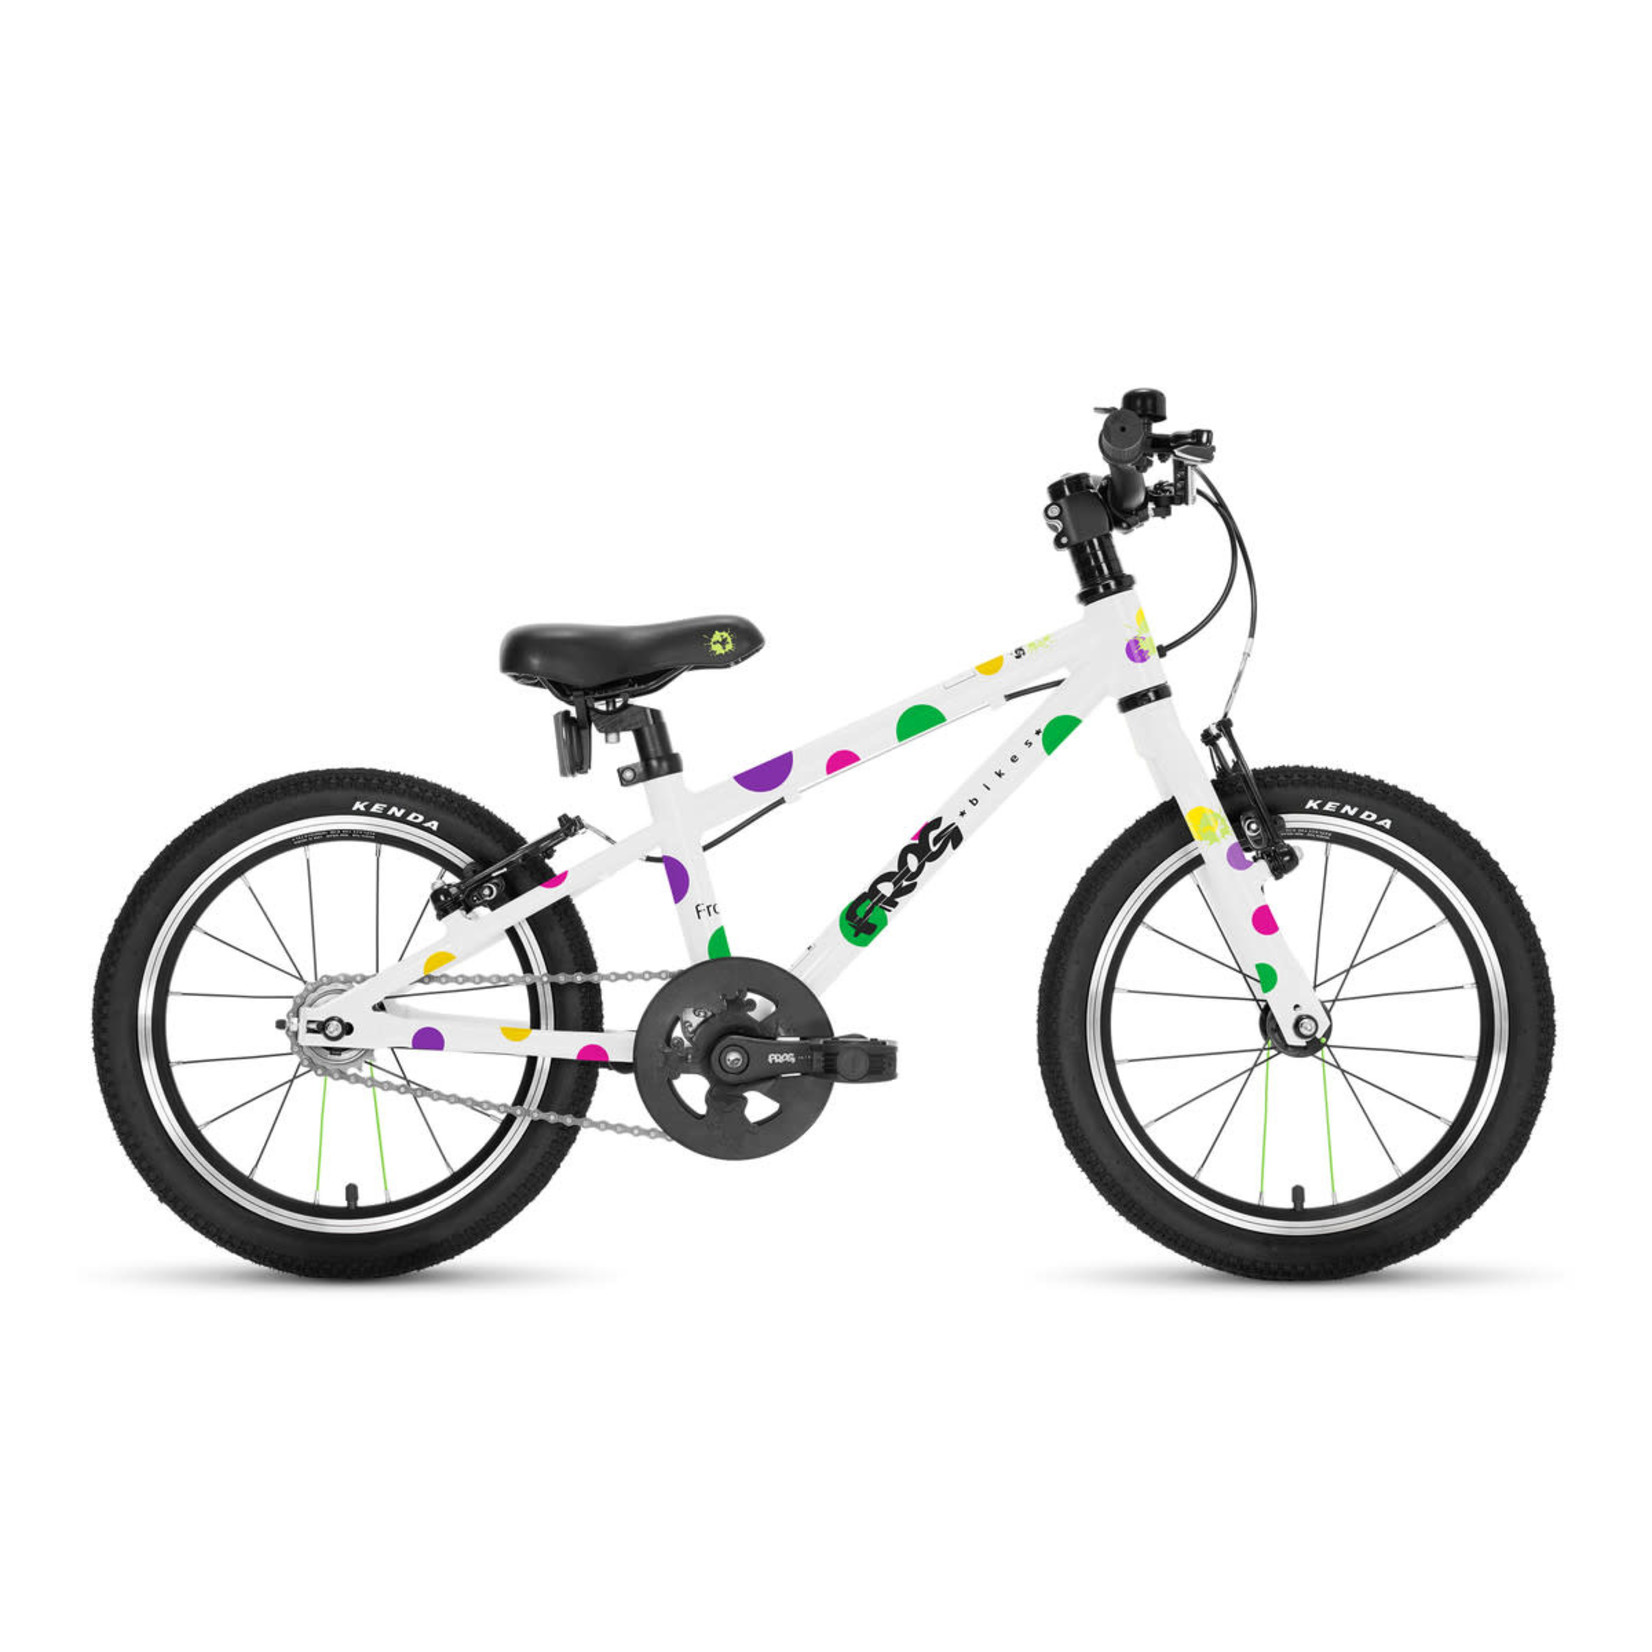 Frog Bikes Frog Bikes, First Pedal, Frog 44